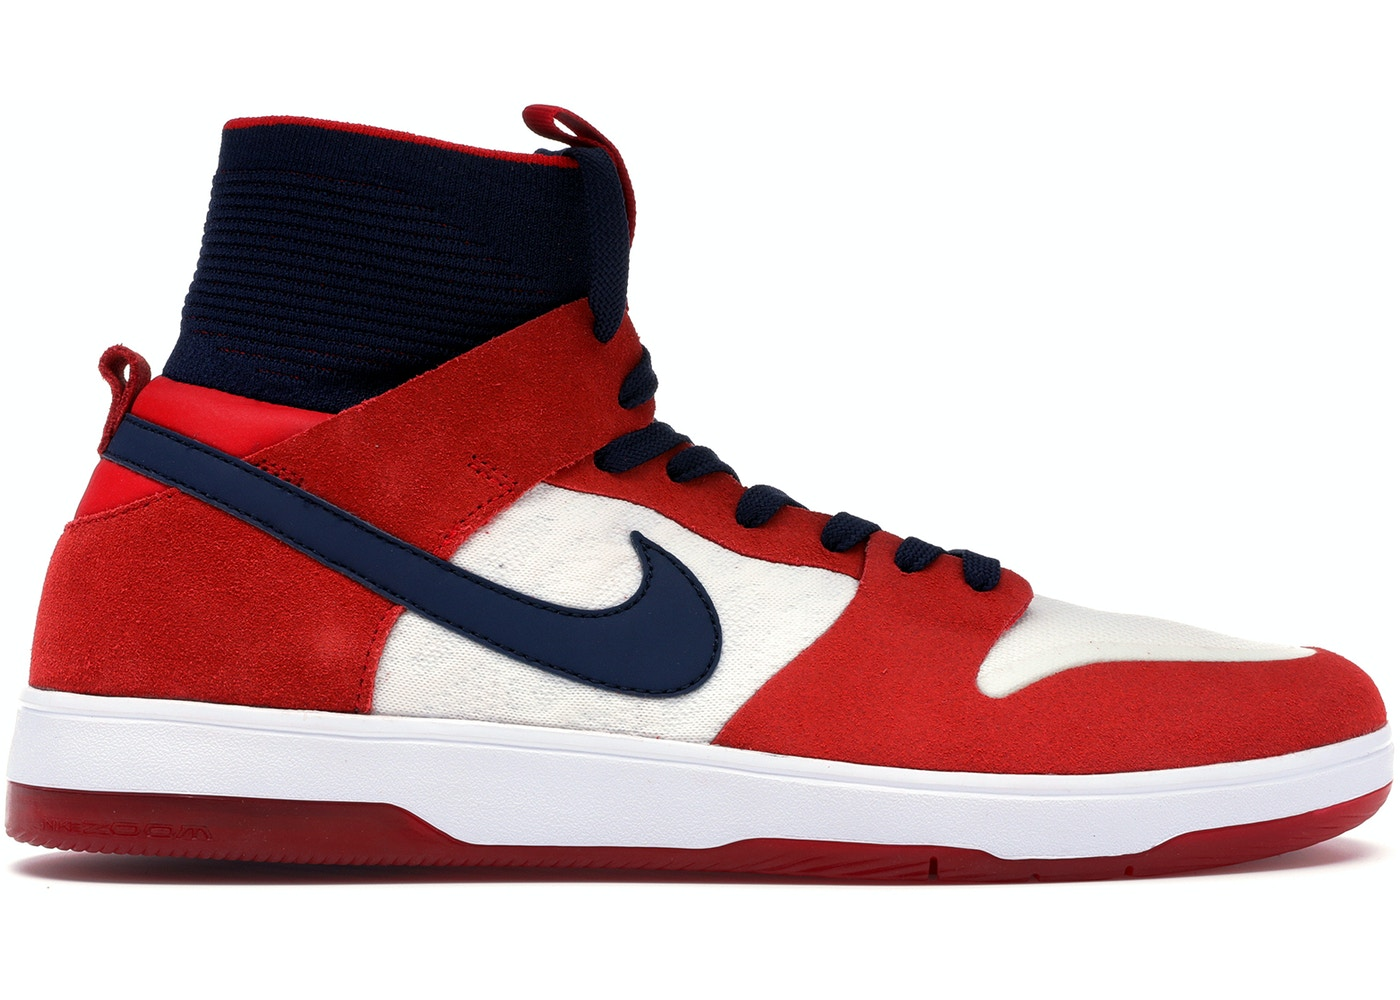 official photos 0f7ee cb507 Nike SB Dunk High Elite Red Navy White